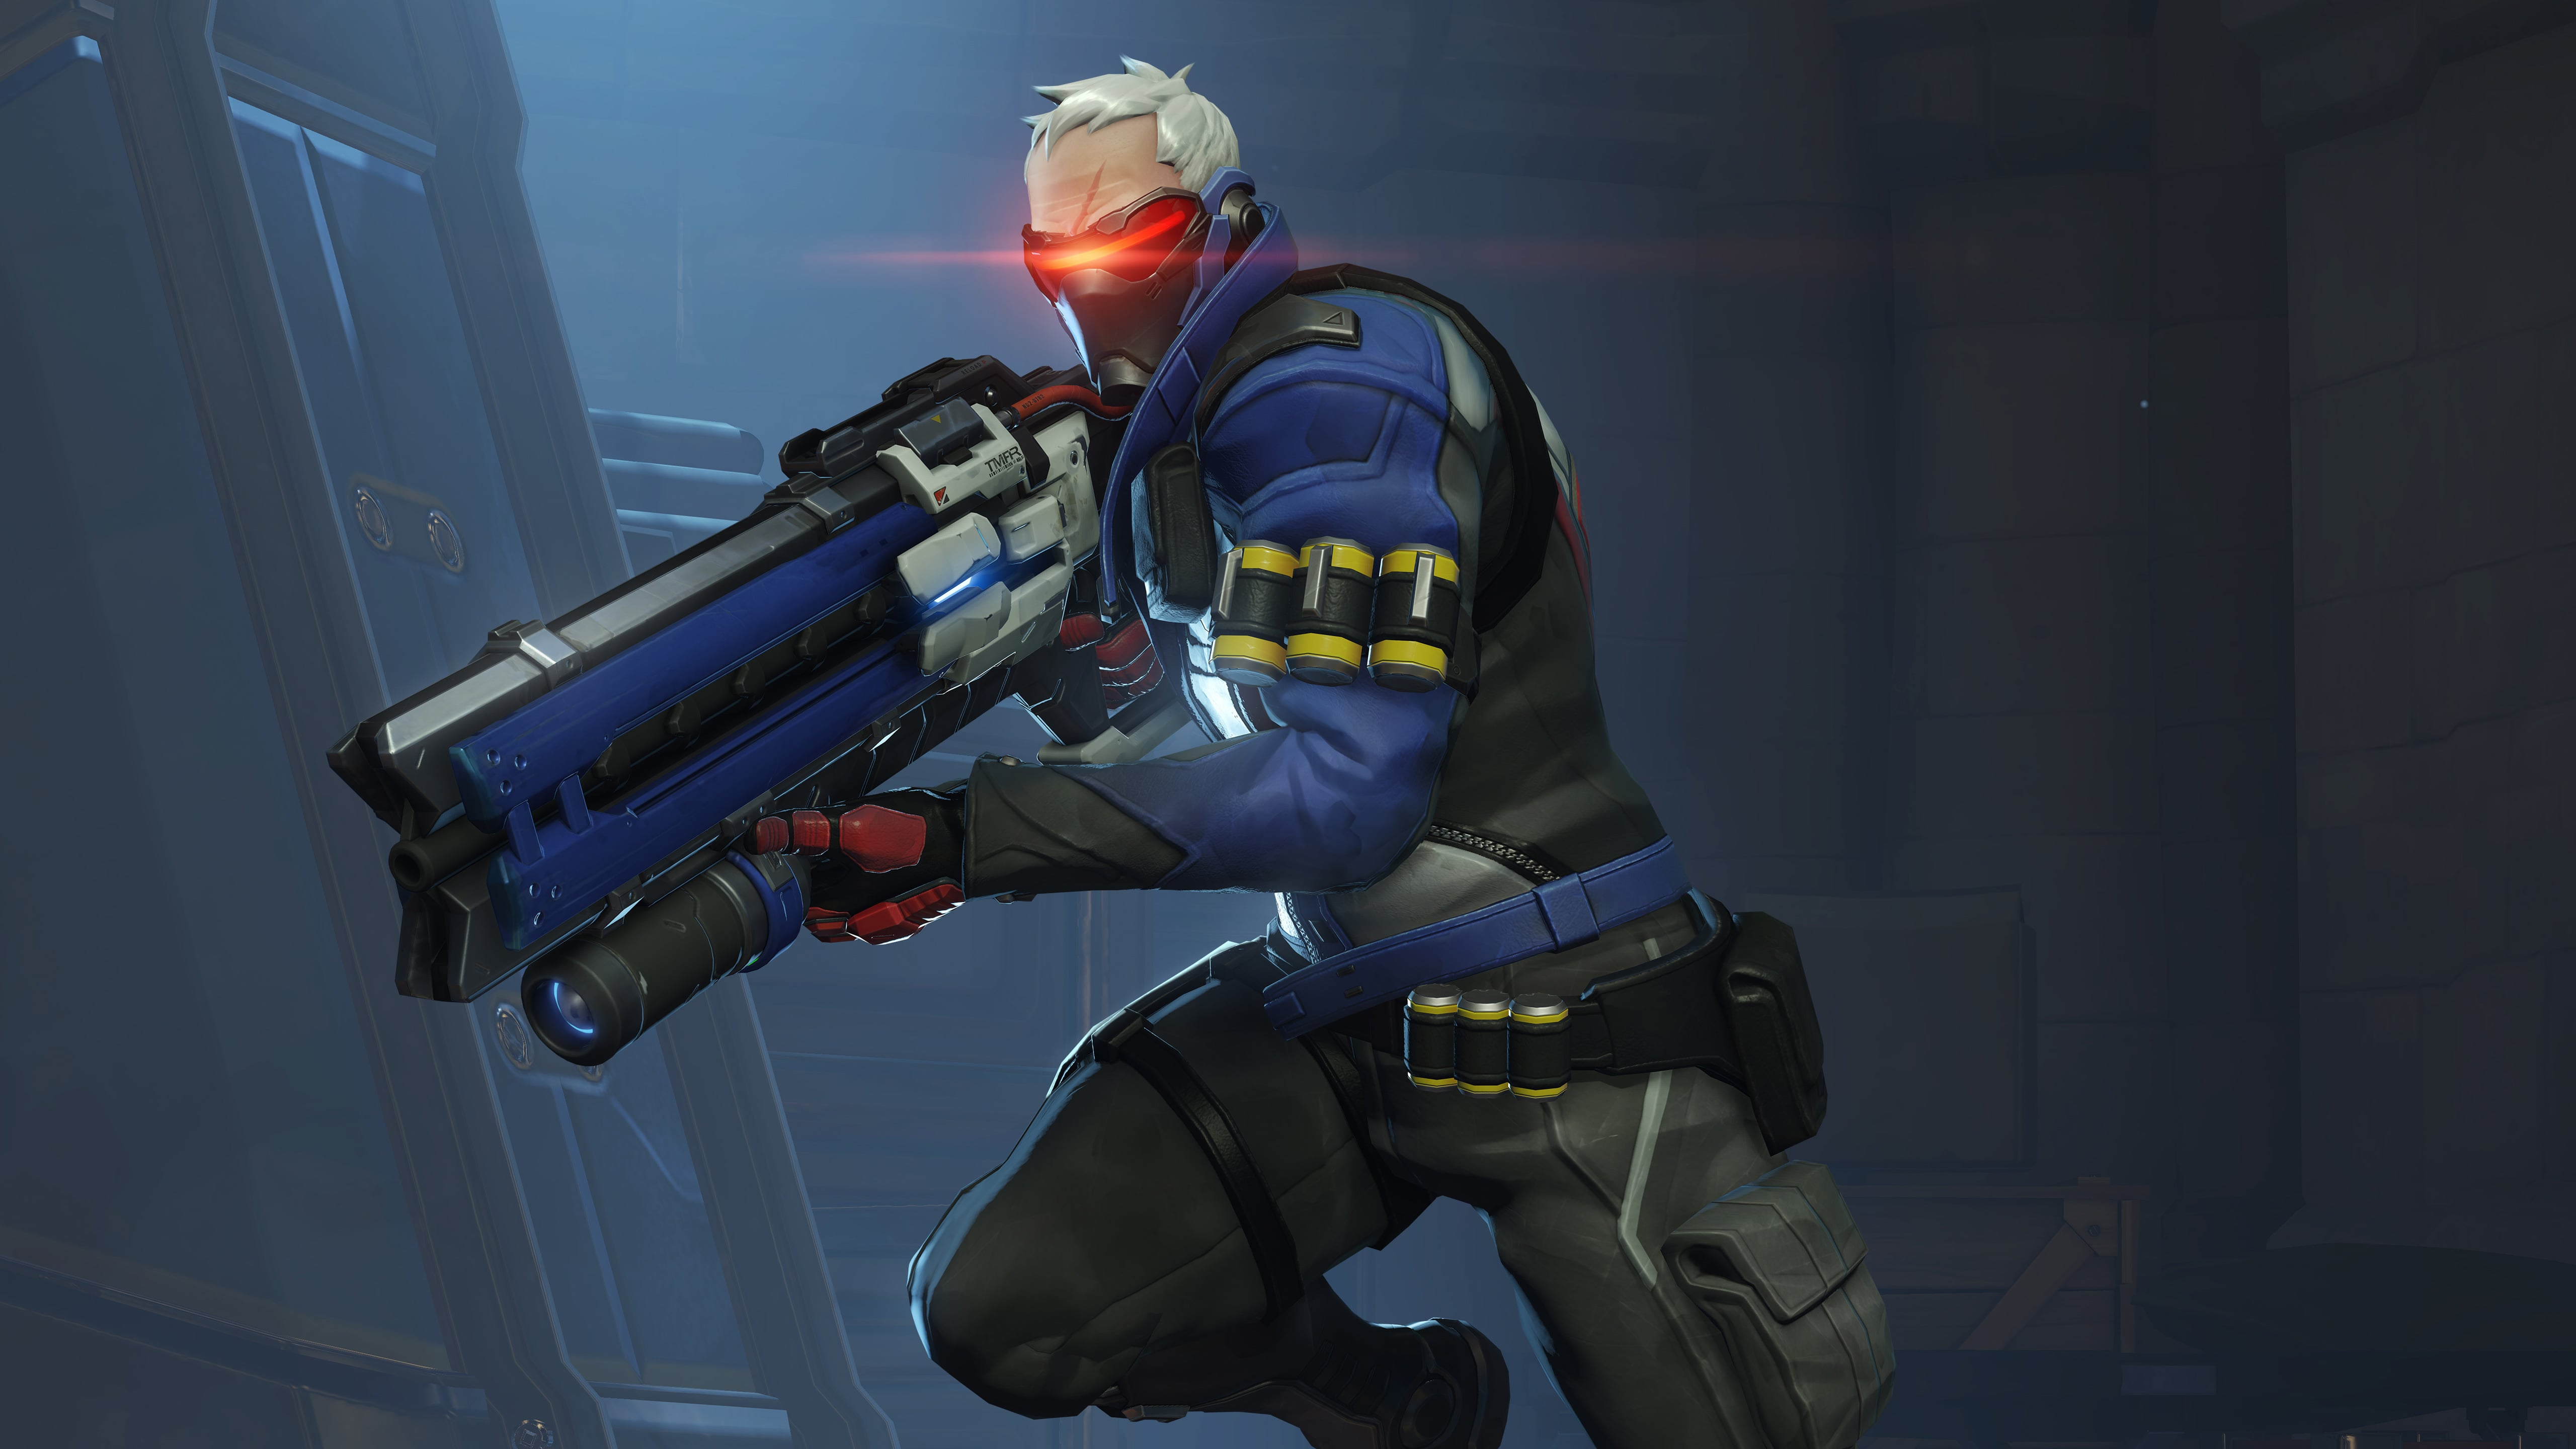 Overwatch : Soldier: 76 Wallpapers hd